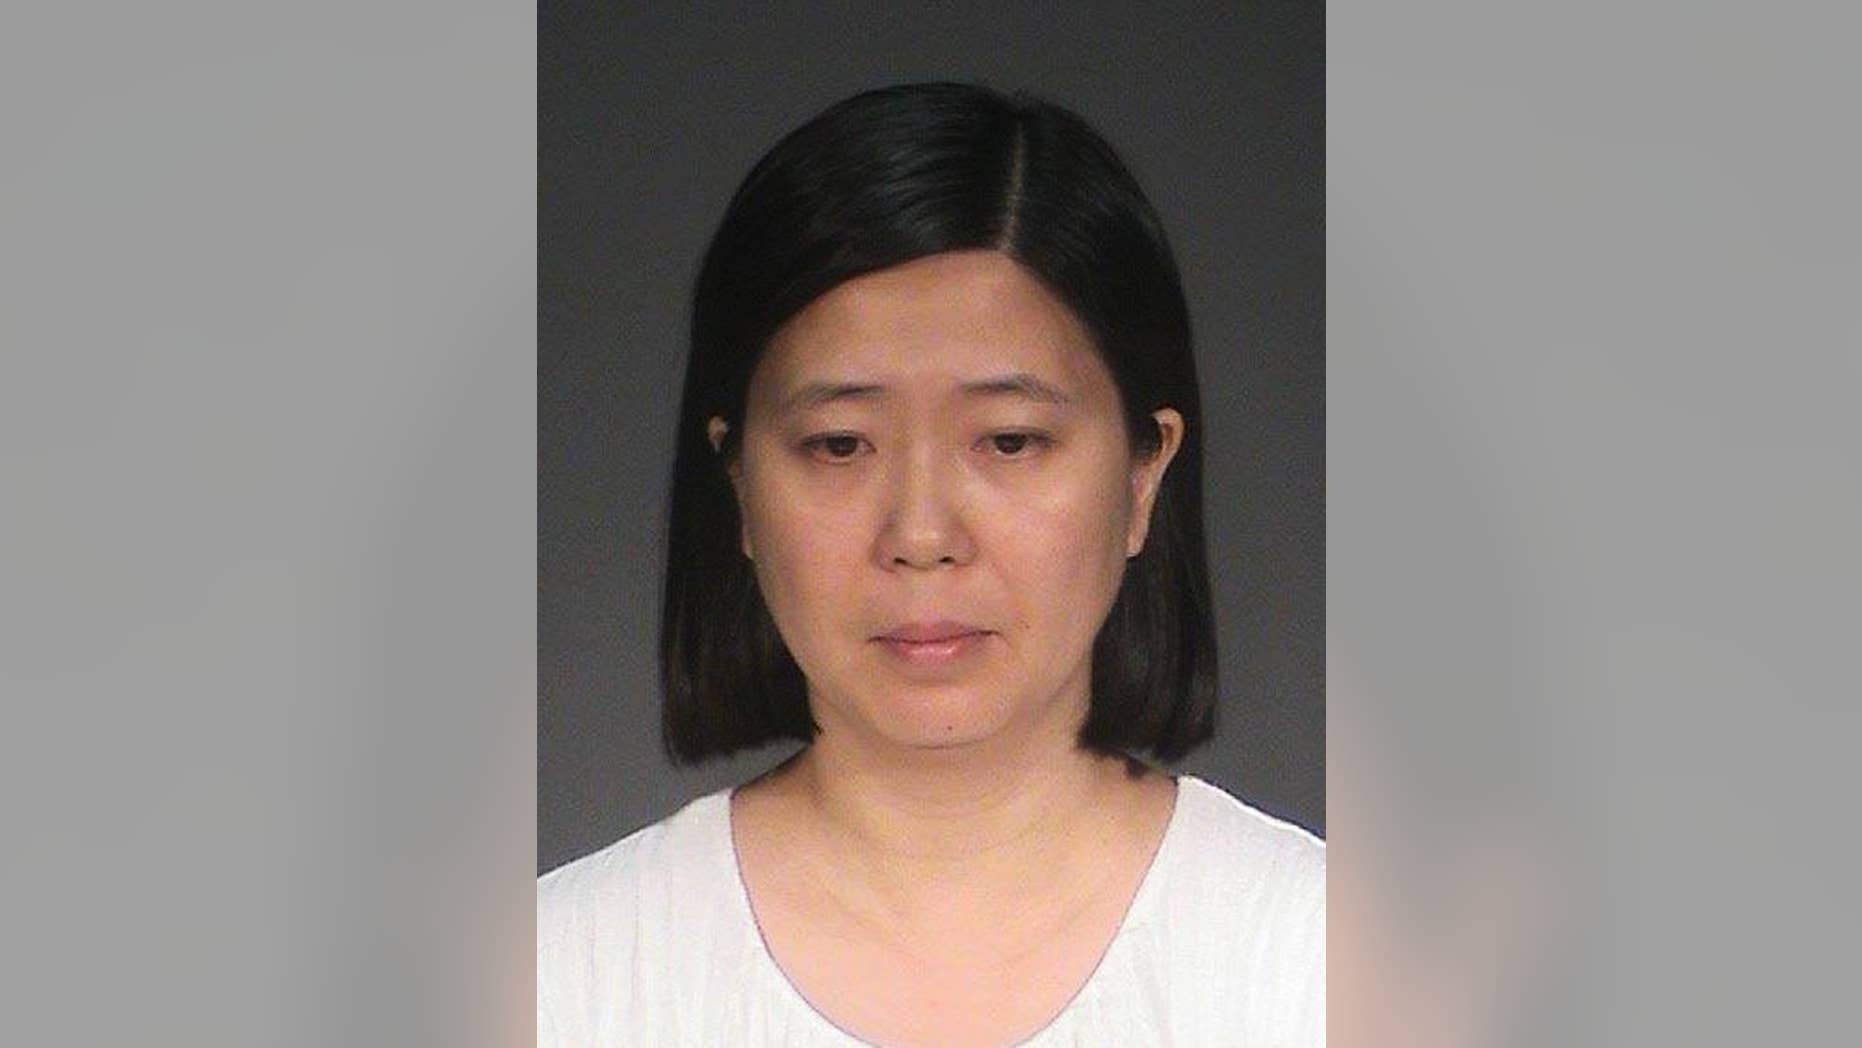 This photo provided by the Washington County Jail shows Lili Huang. The Minnesota woman, of Woodbury, is charged in Washington County with five felony counts, including labor trafficking, false imprisonment and assault. Huang remains in jail after making her initial court appearance Friday, July 15, 2016, the Star Tribune reported. (Washington County Jail via AP)